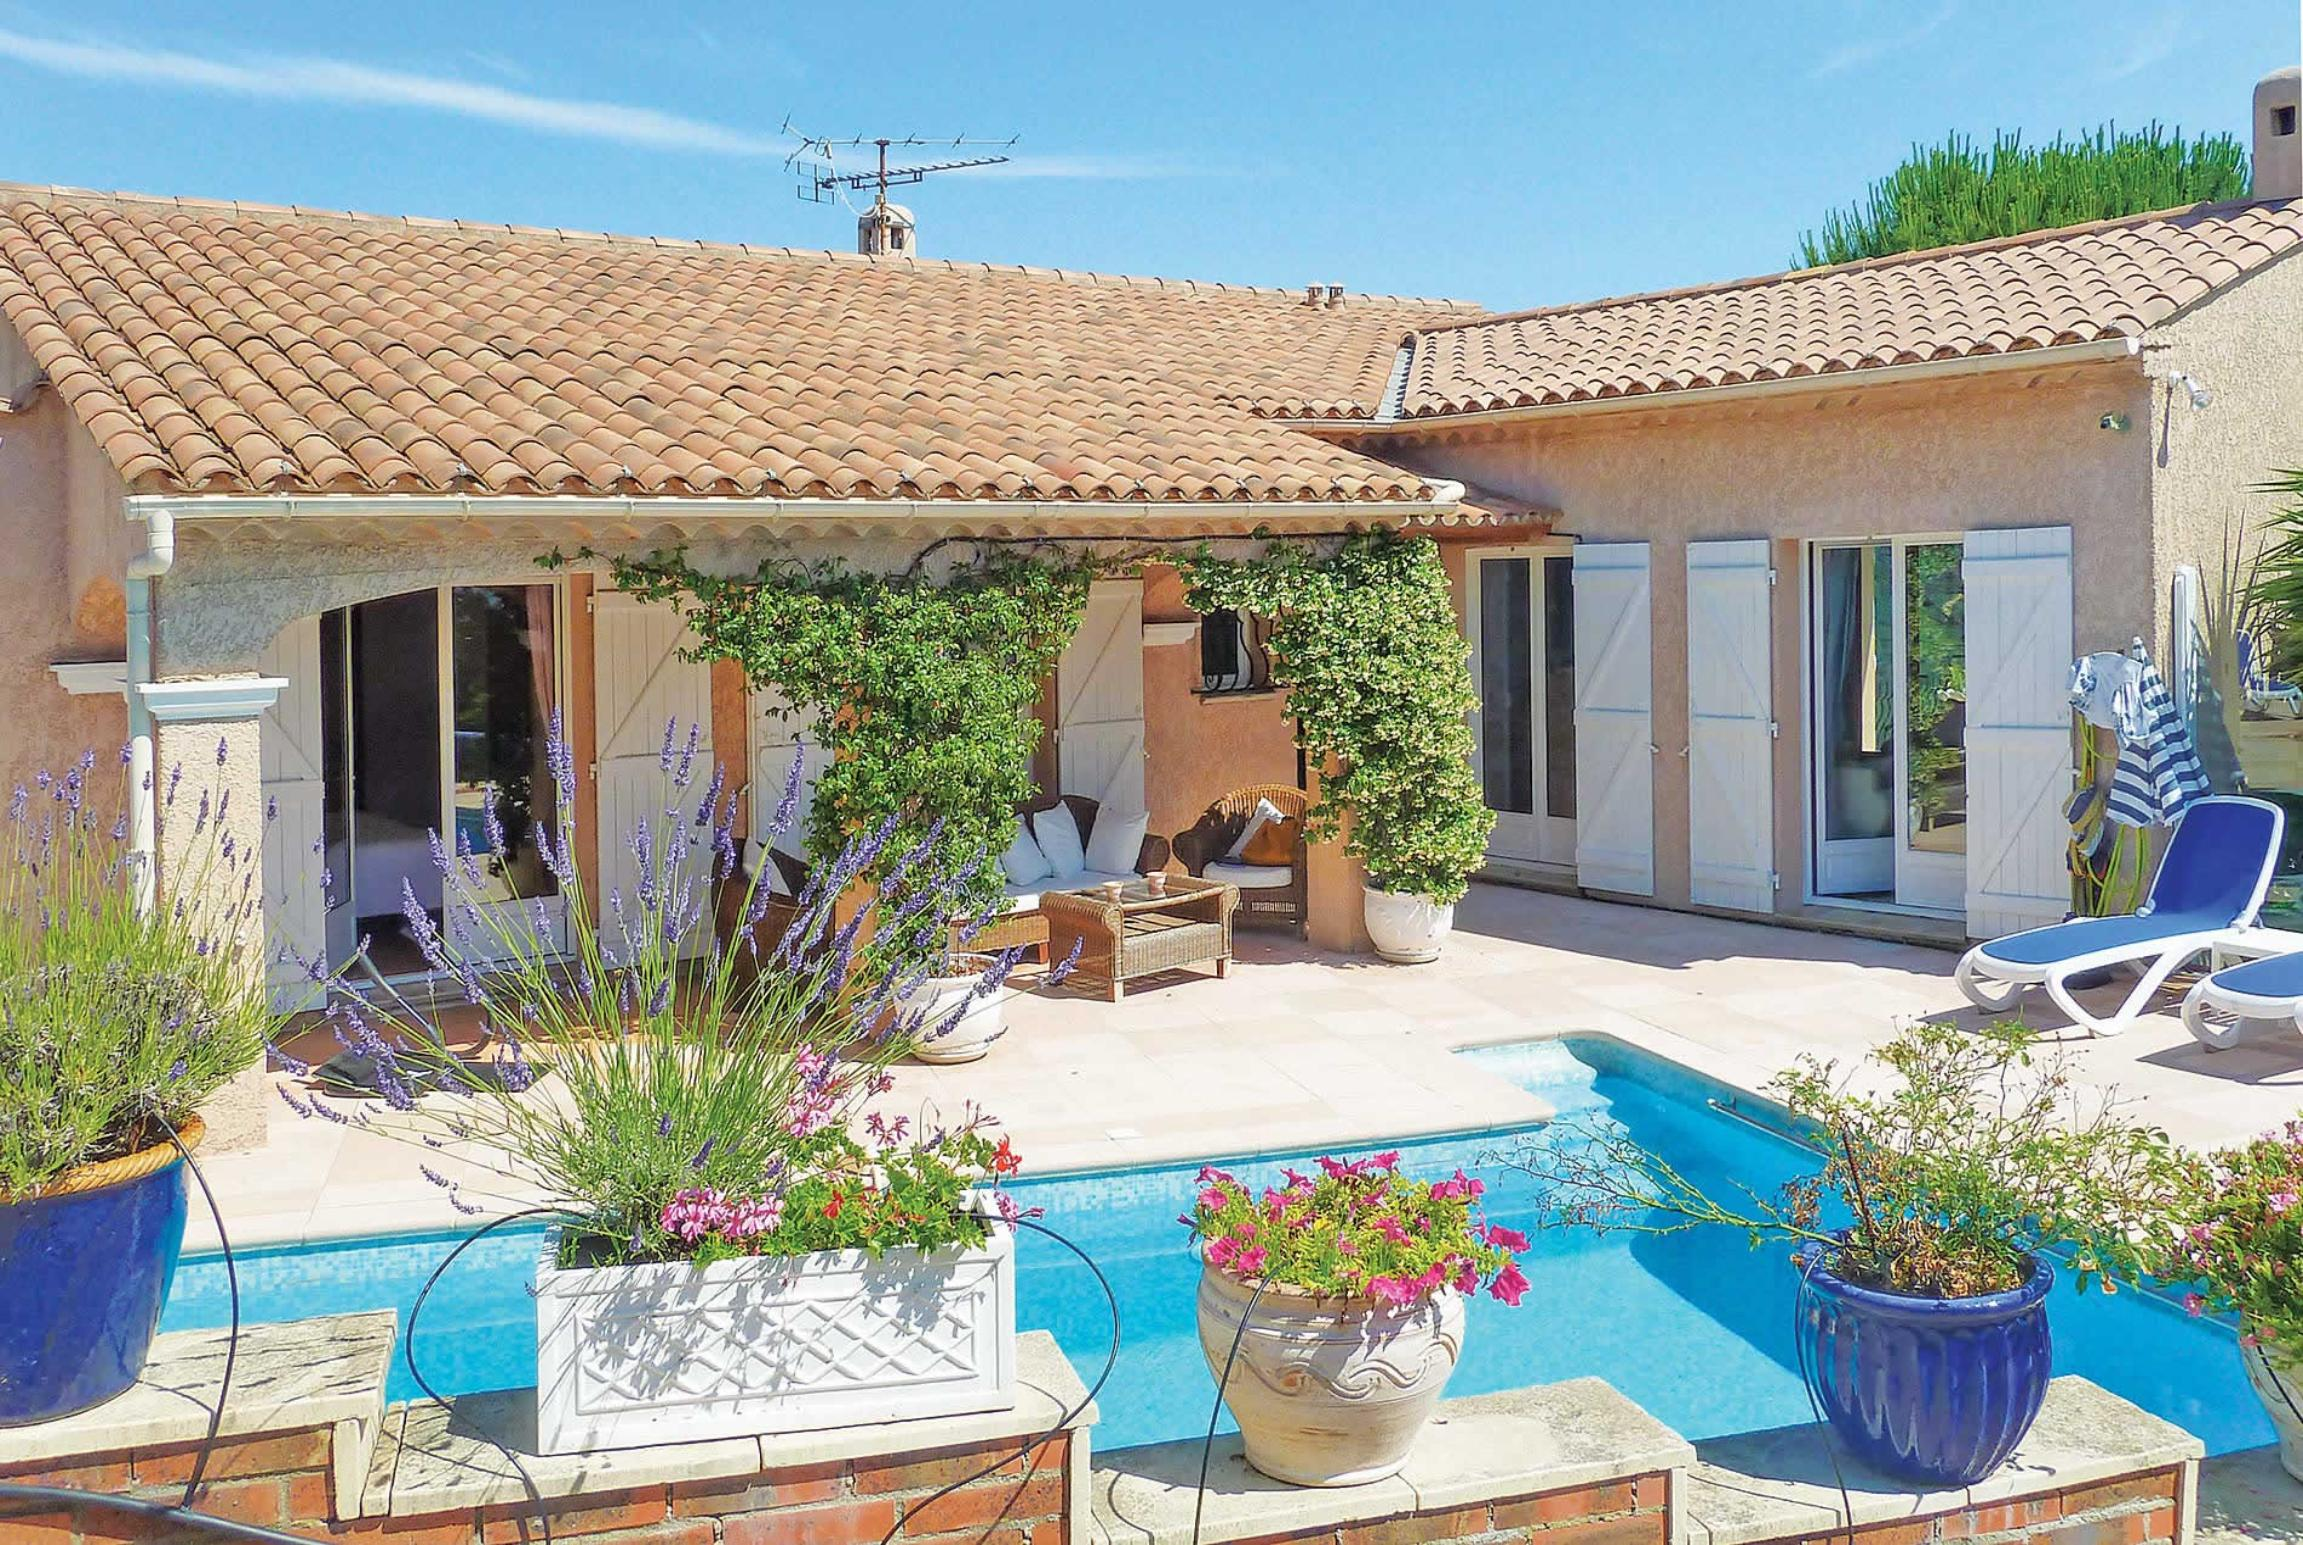 Read more about La Belle Vue villa